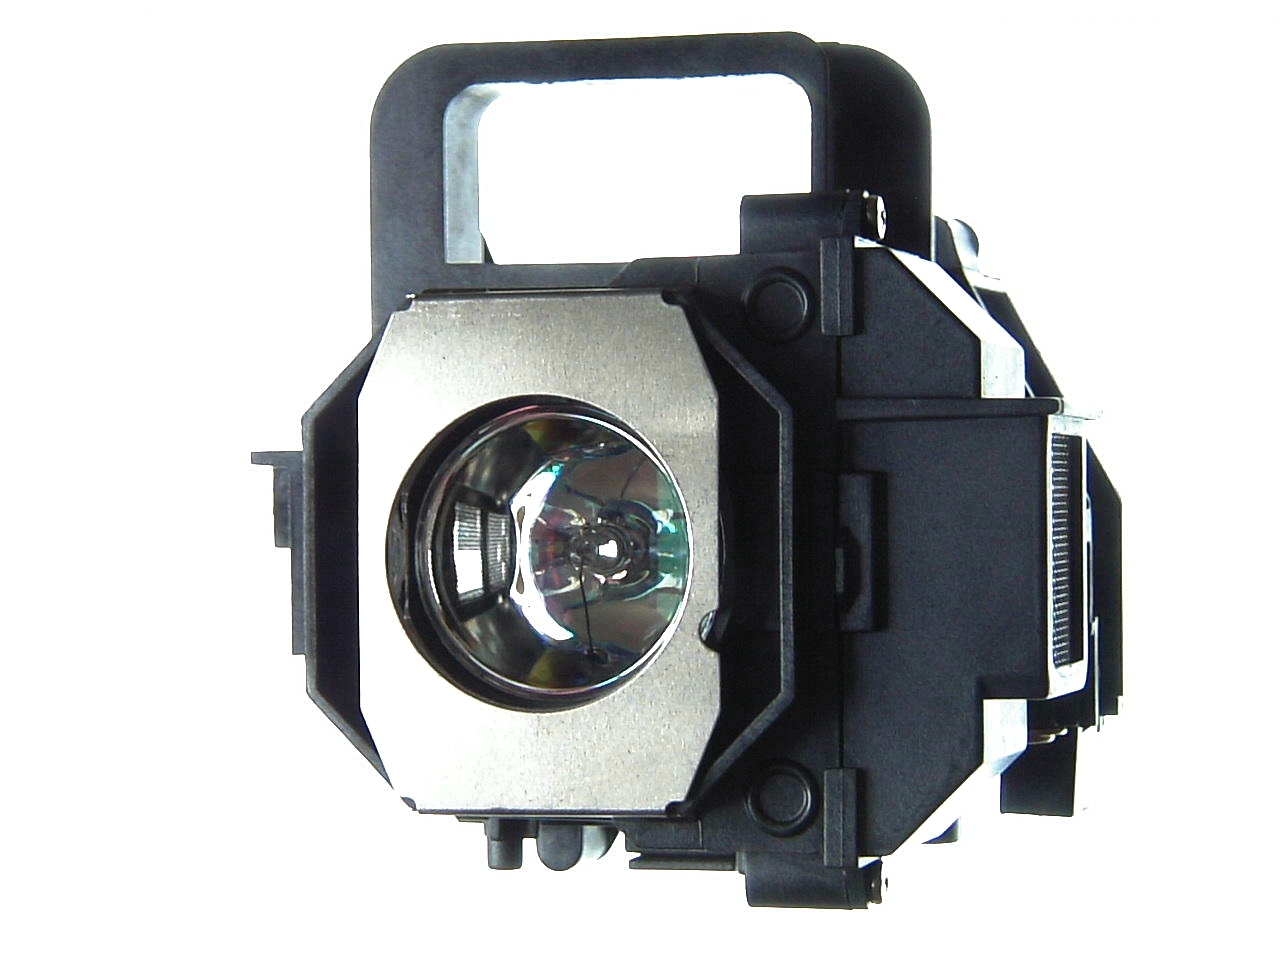 EPSON EPSON EH-TW2800 Genuine Original Projector Lamp